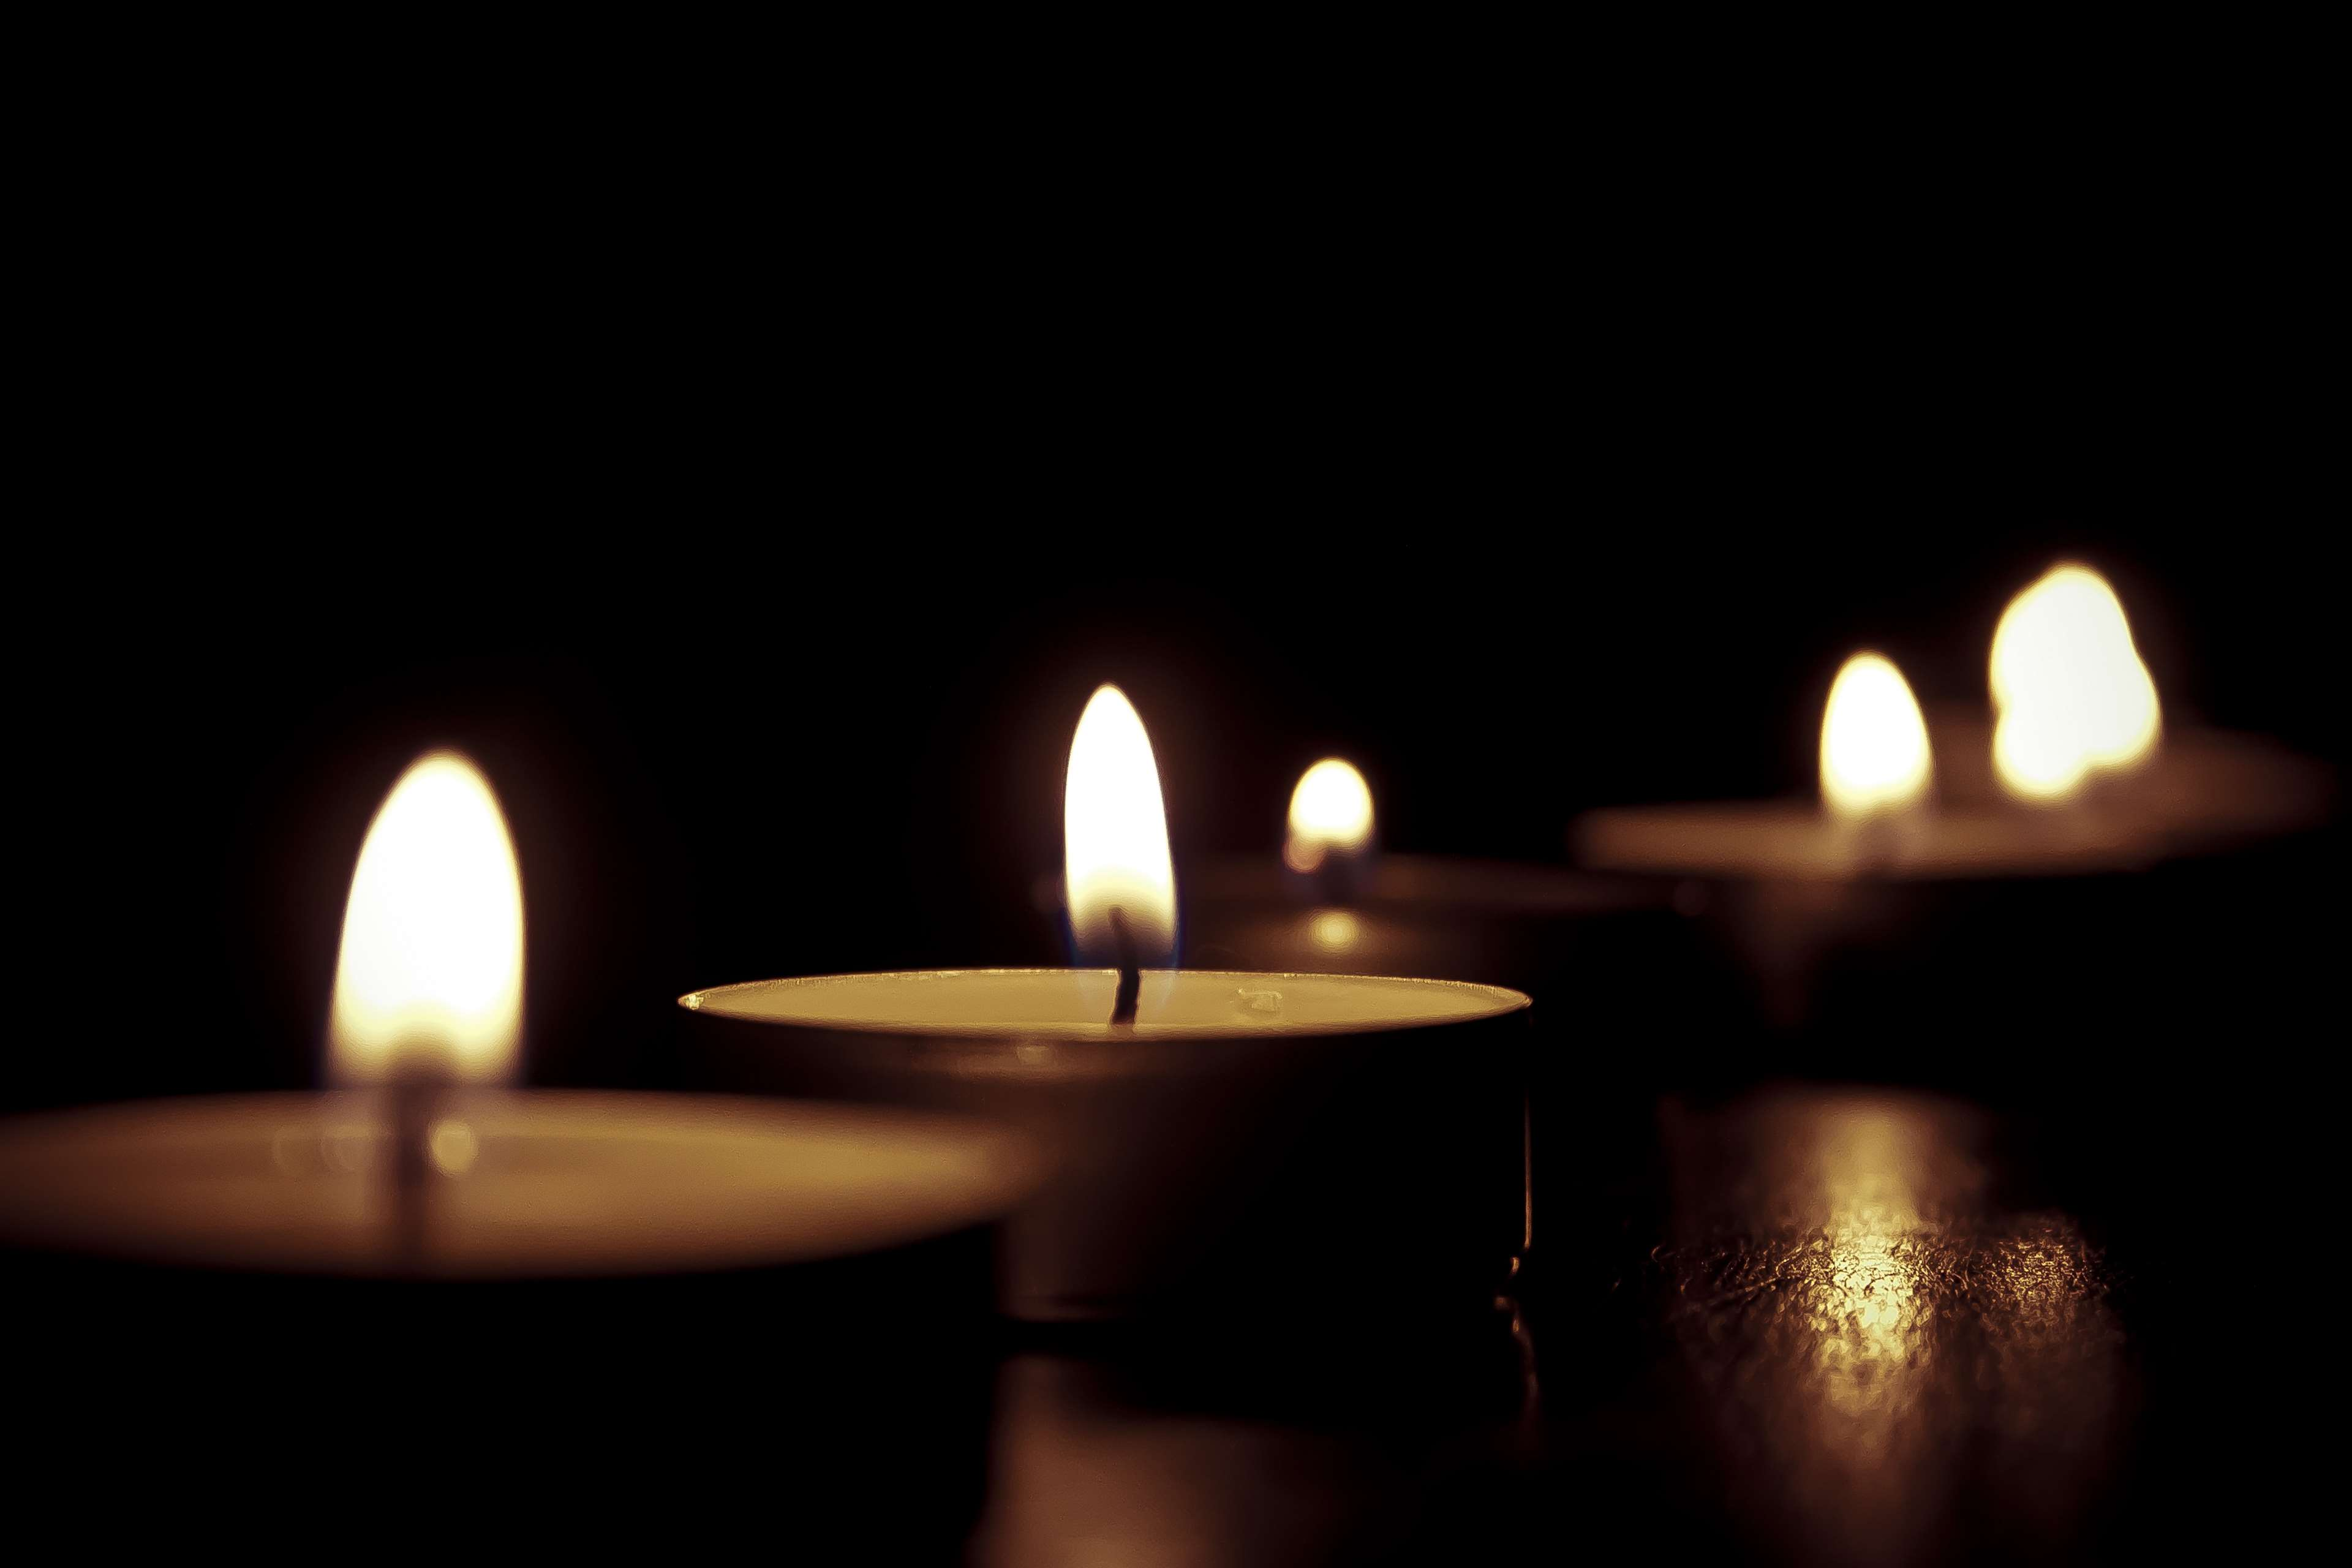 3840x2560 Burn, Candle Flame, Candlelight, Candles, Christmas, Fire, Flame